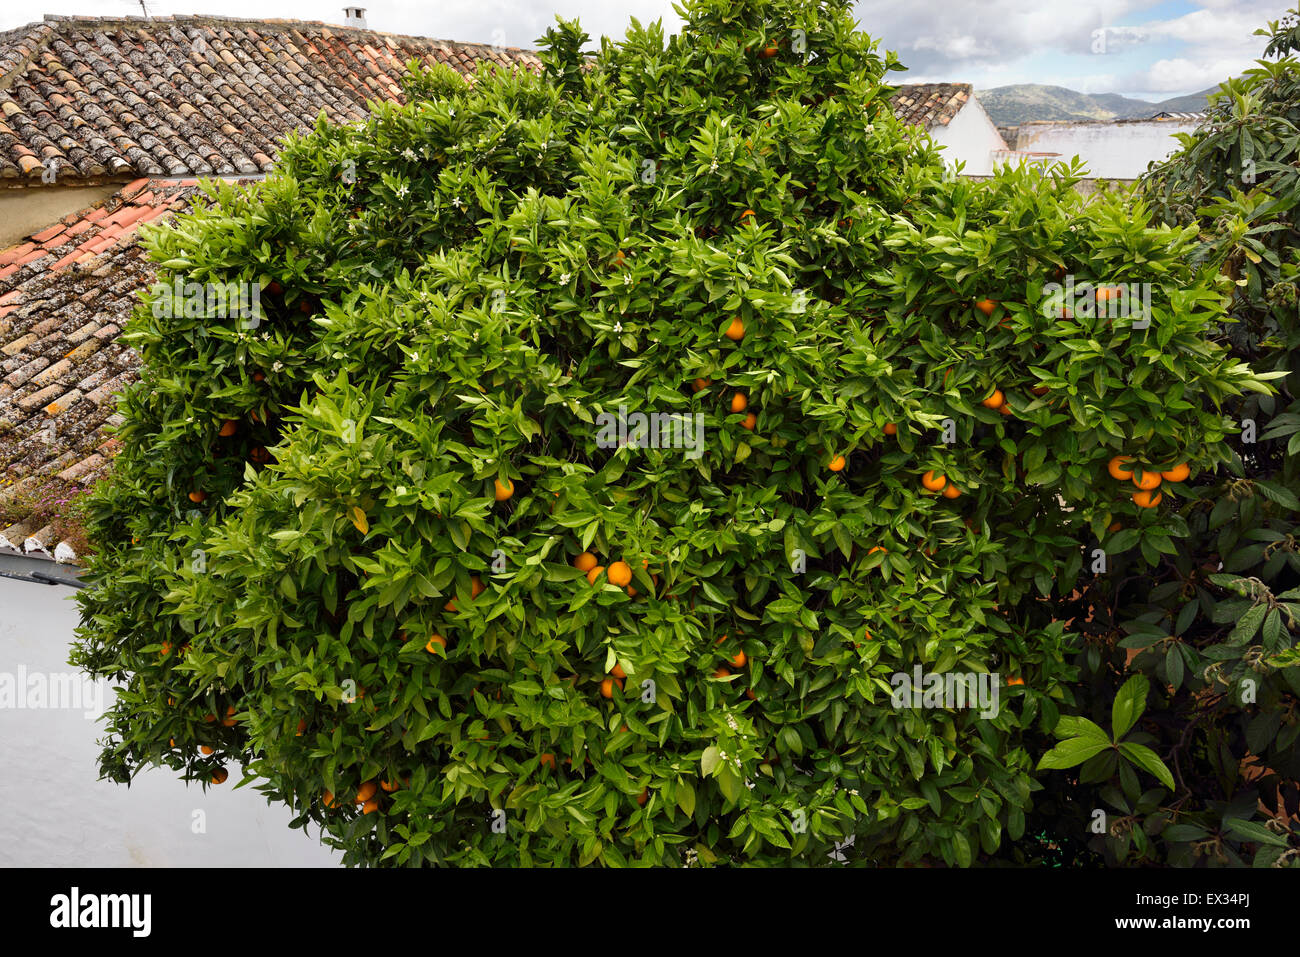 Ornamental bitter Seville orange and Mango tree on a street in Ronda Andalusia Spain - Stock Image